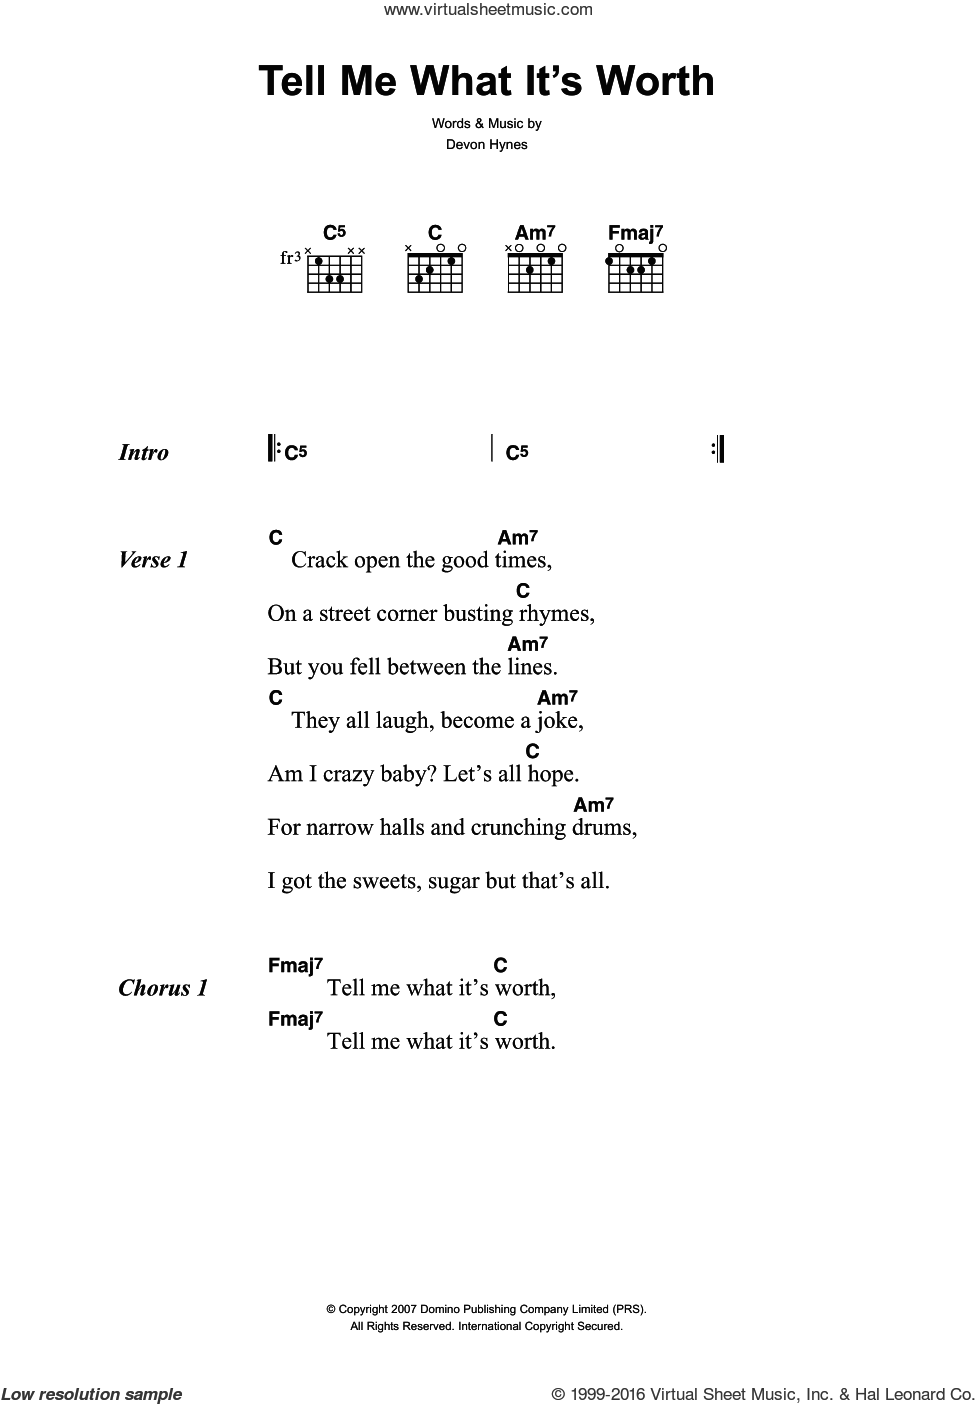 Tell Me What It's Worth sheet music for guitar (chords) by Lightspeed Champion and Devon Hynes, intermediate skill level